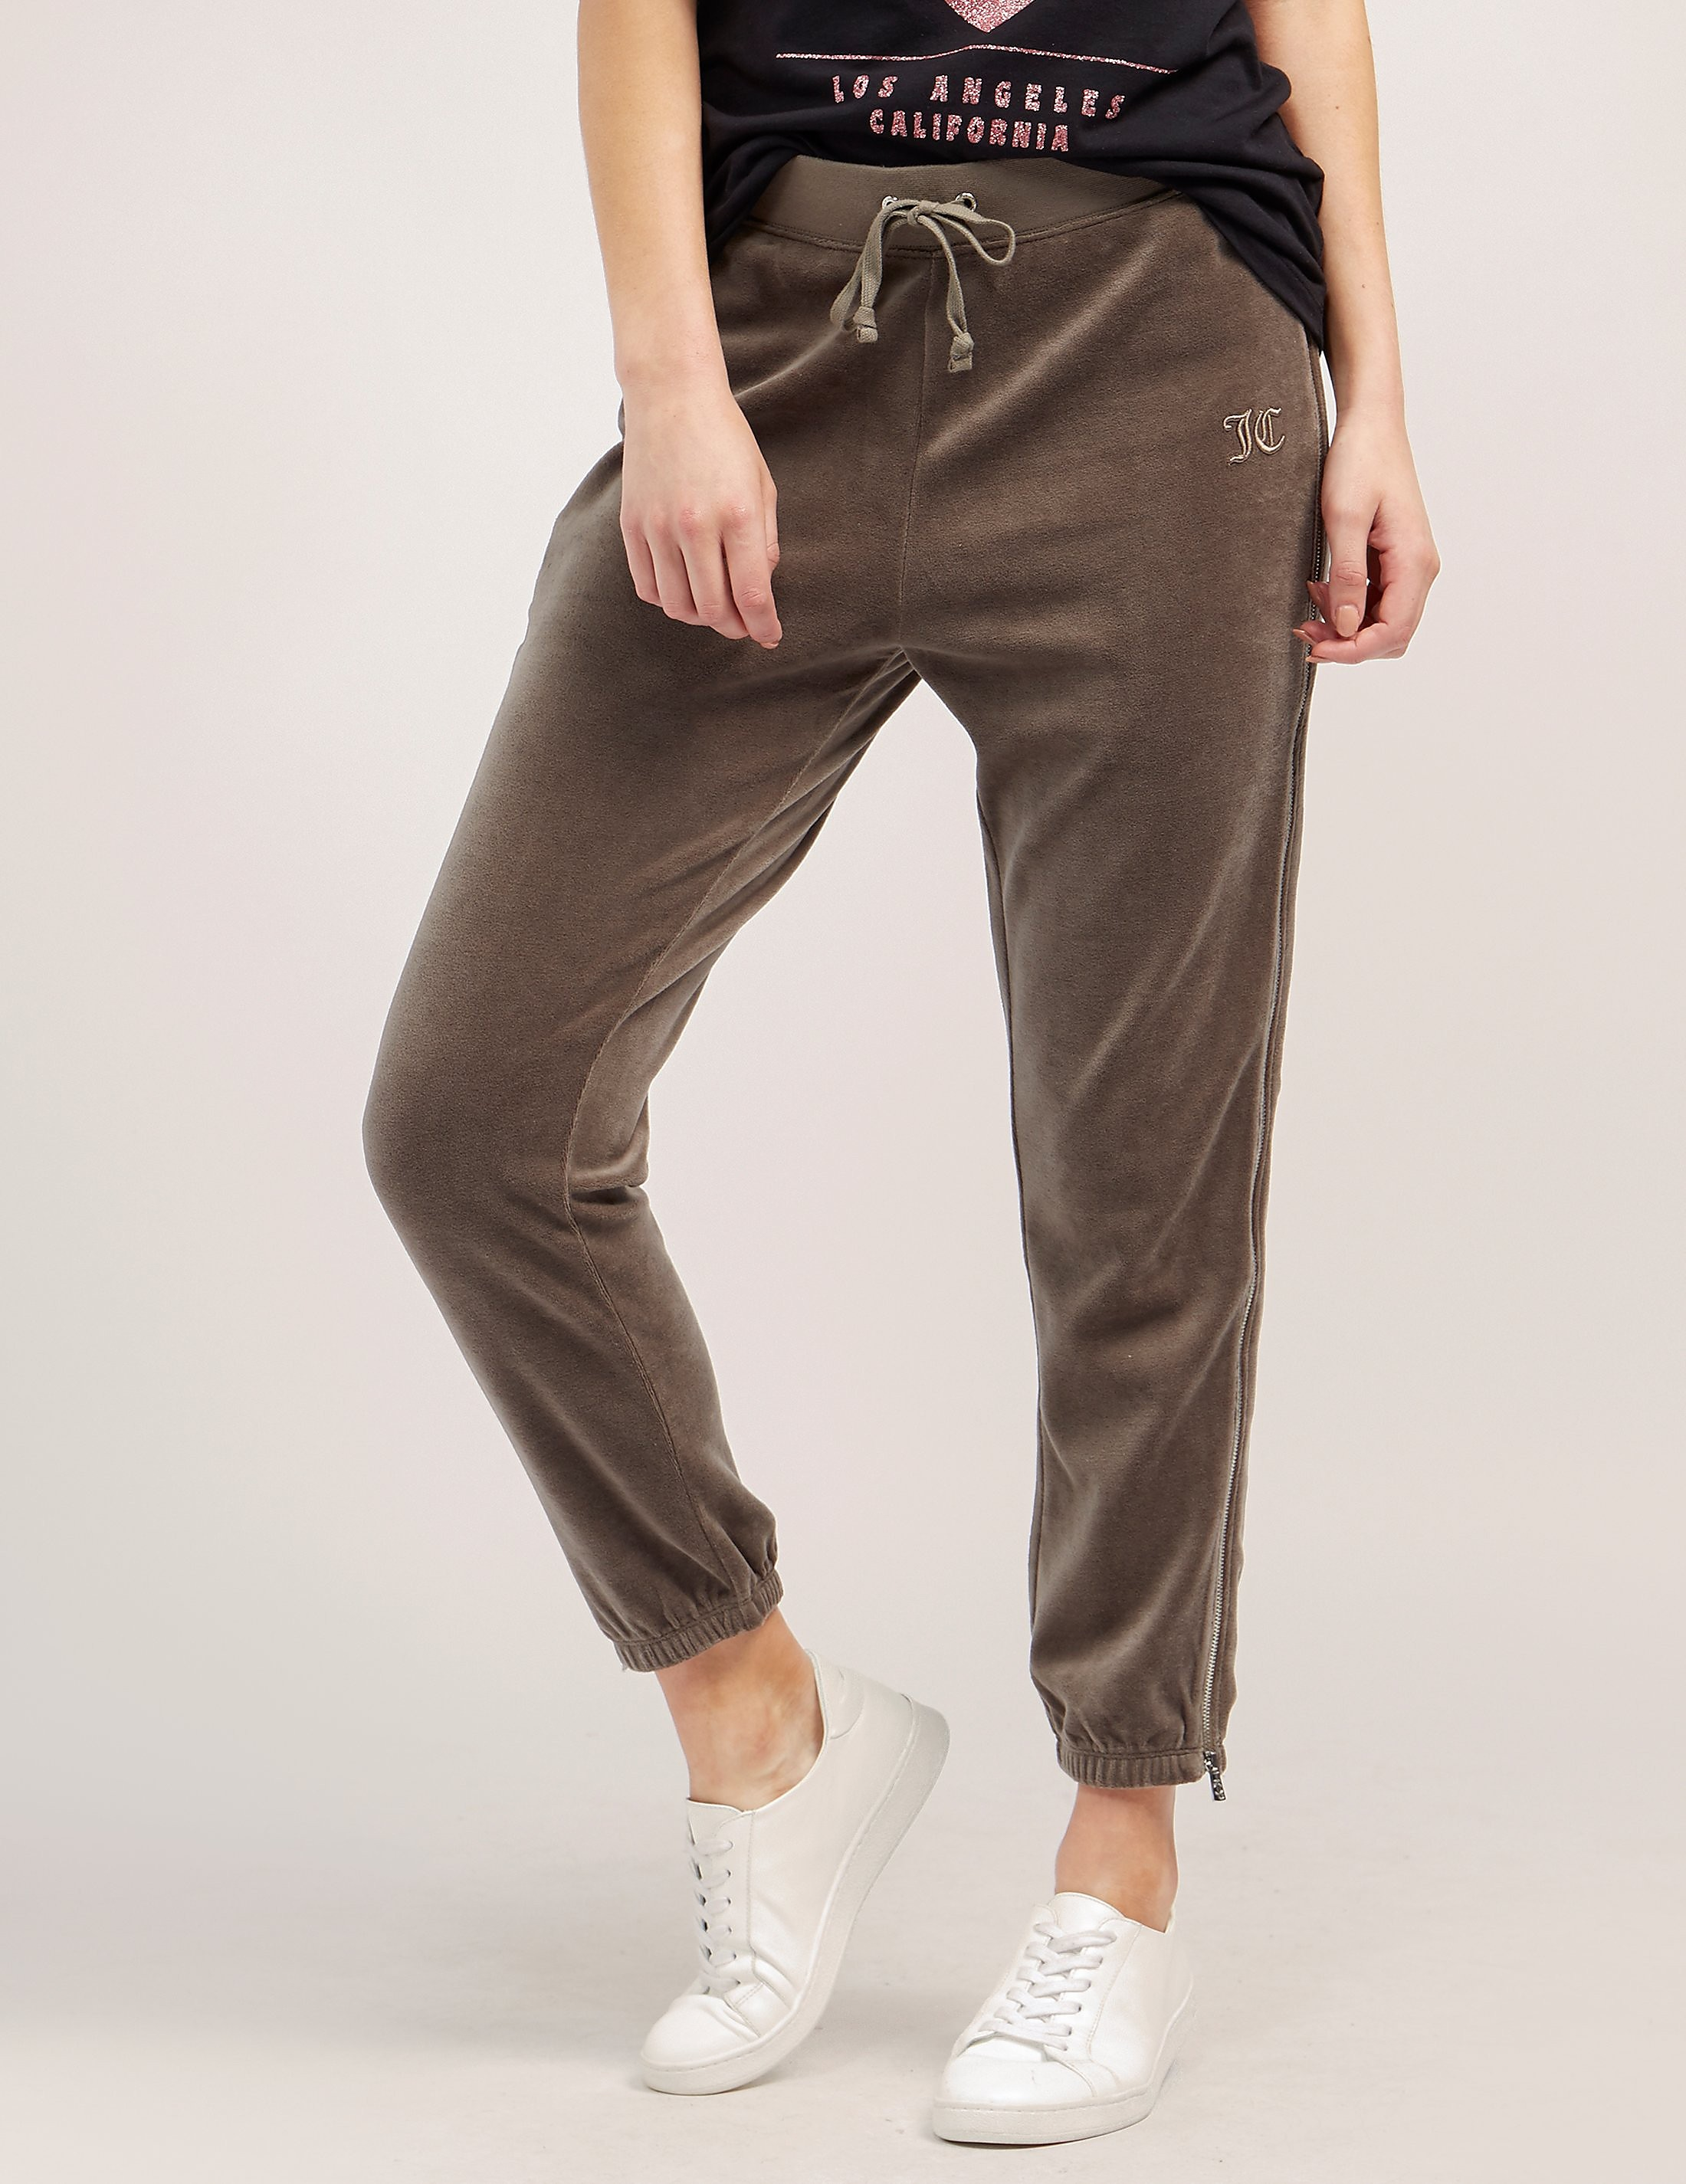 Juicy Couture Velour Zip Pant